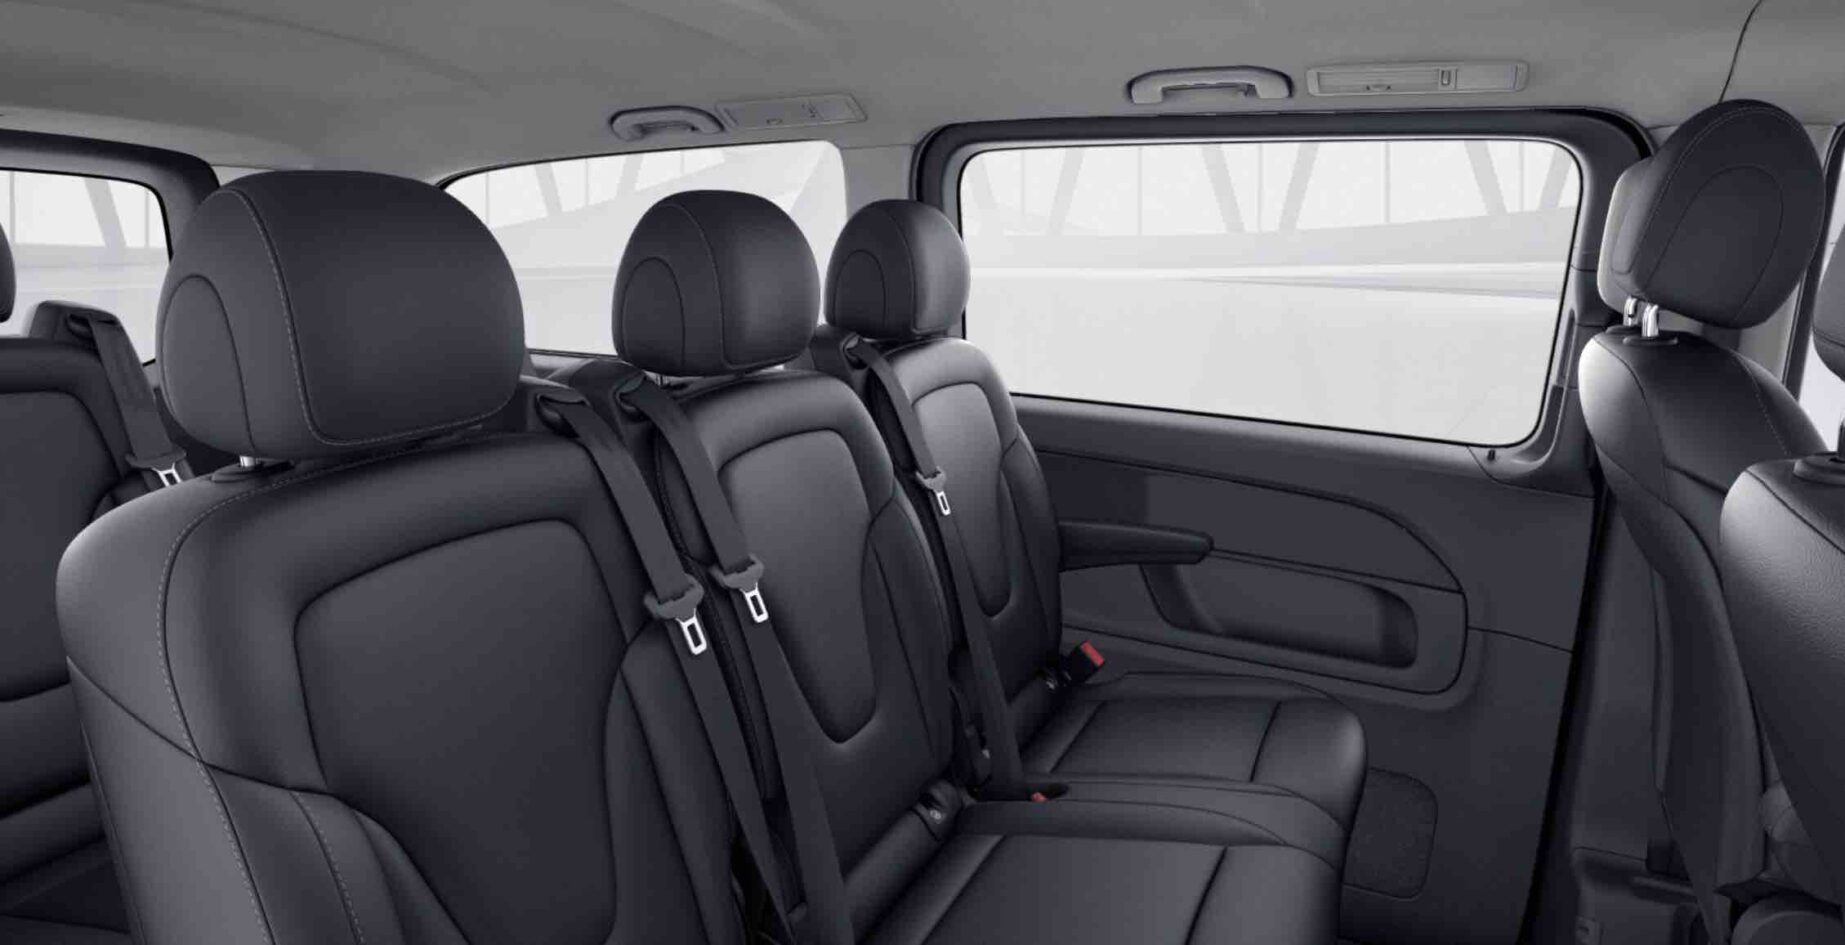 Luxury Chauffeur Car Service Milan – V Class Minivan Interior